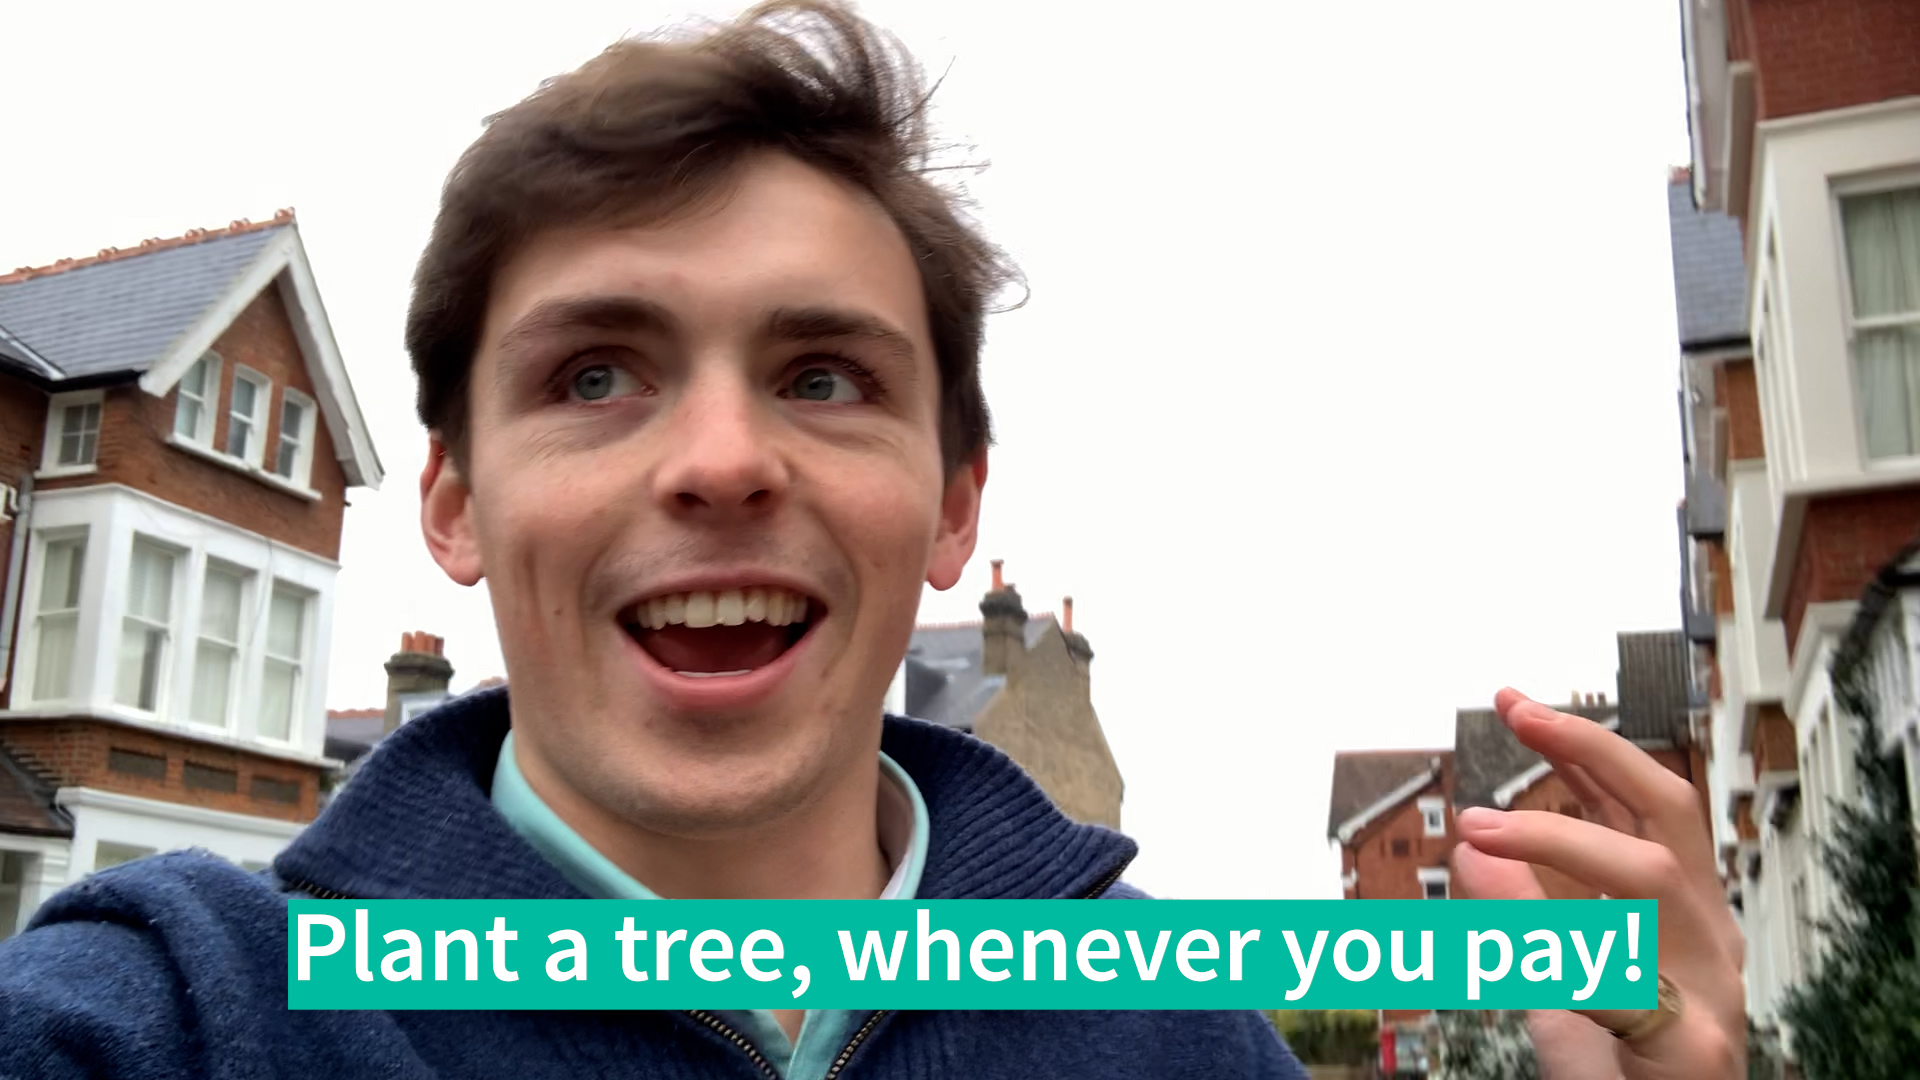 Trilo Vlog #8 - Plant a tree whenever you pay